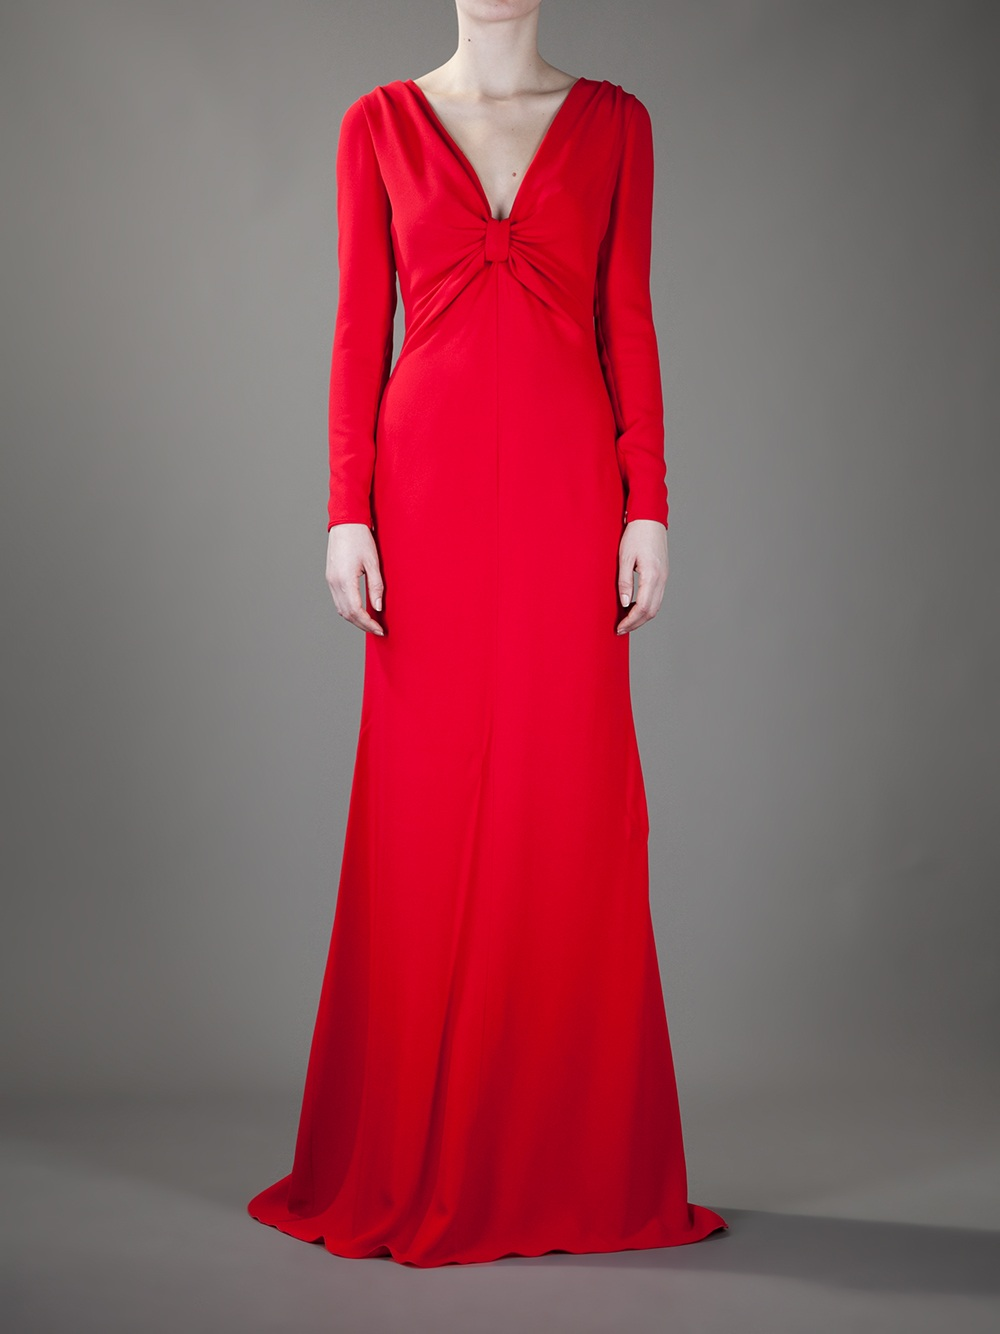 Lyst - Valentino Evening Gown in Red